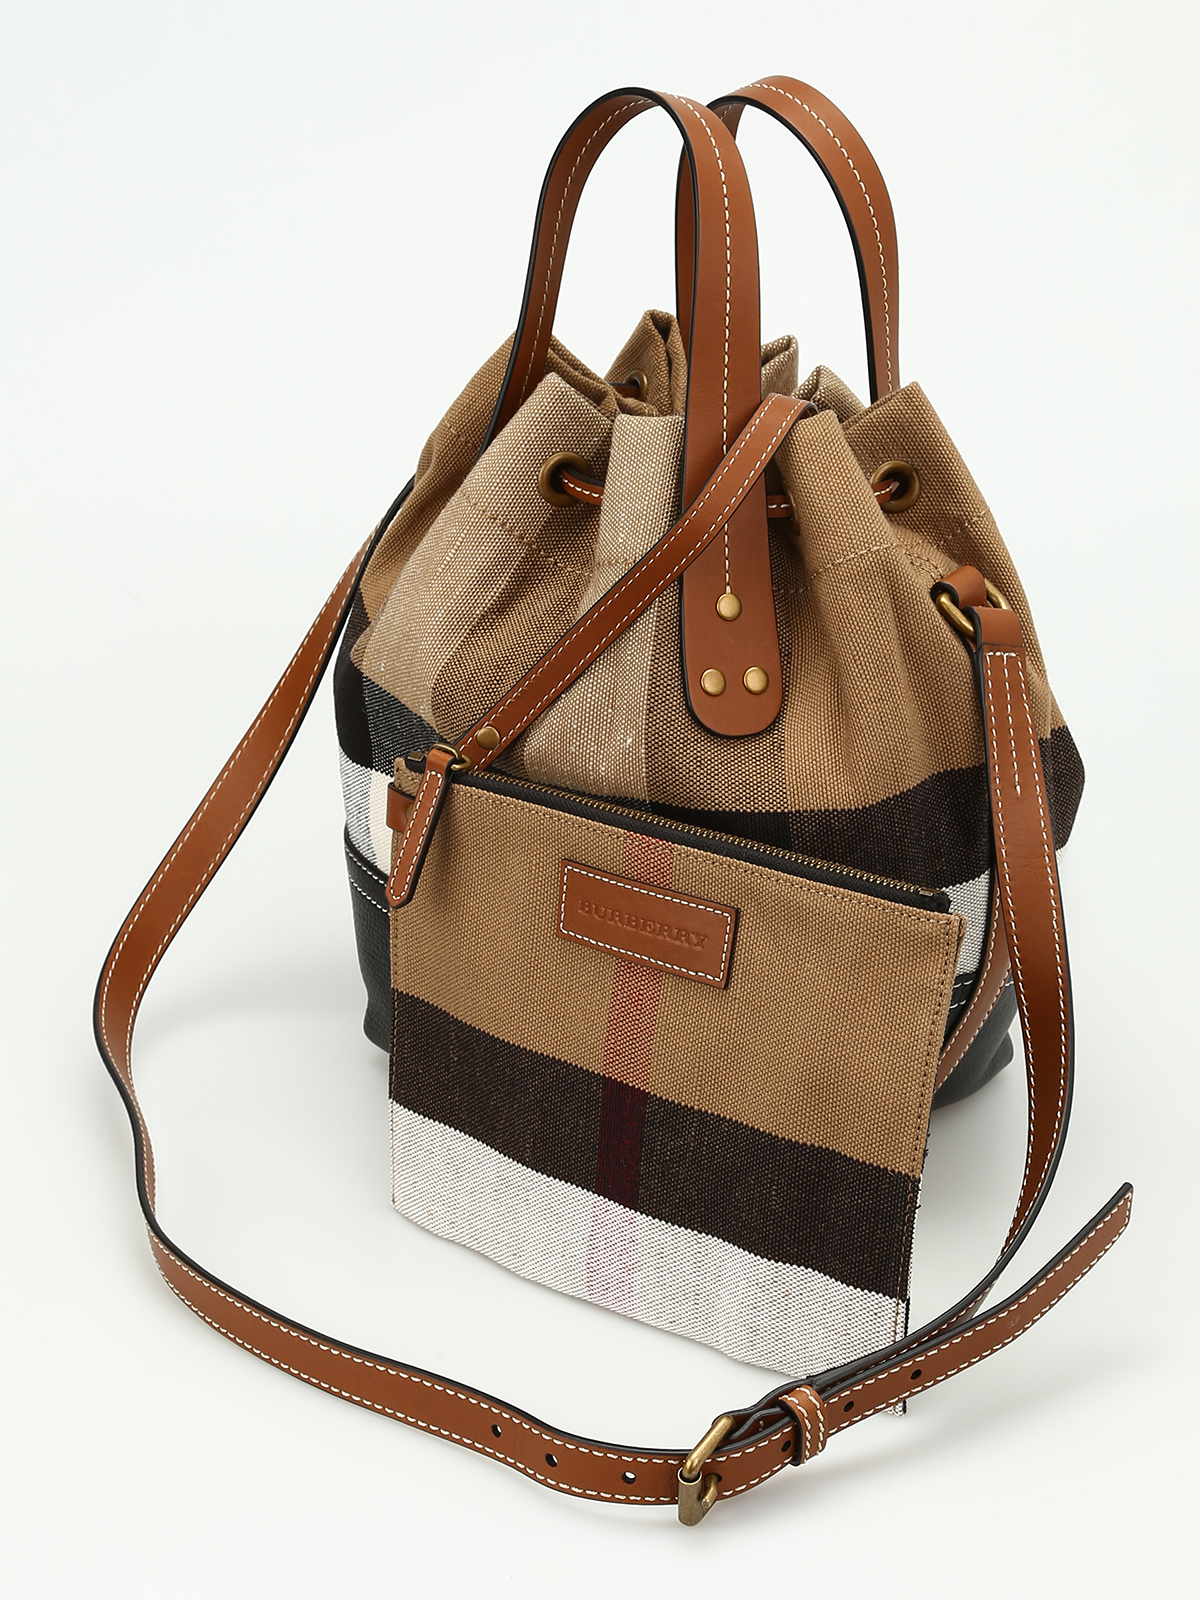 59d003c27 Burberry - Heston canvas Check small bag - Bucket bags - 4049554